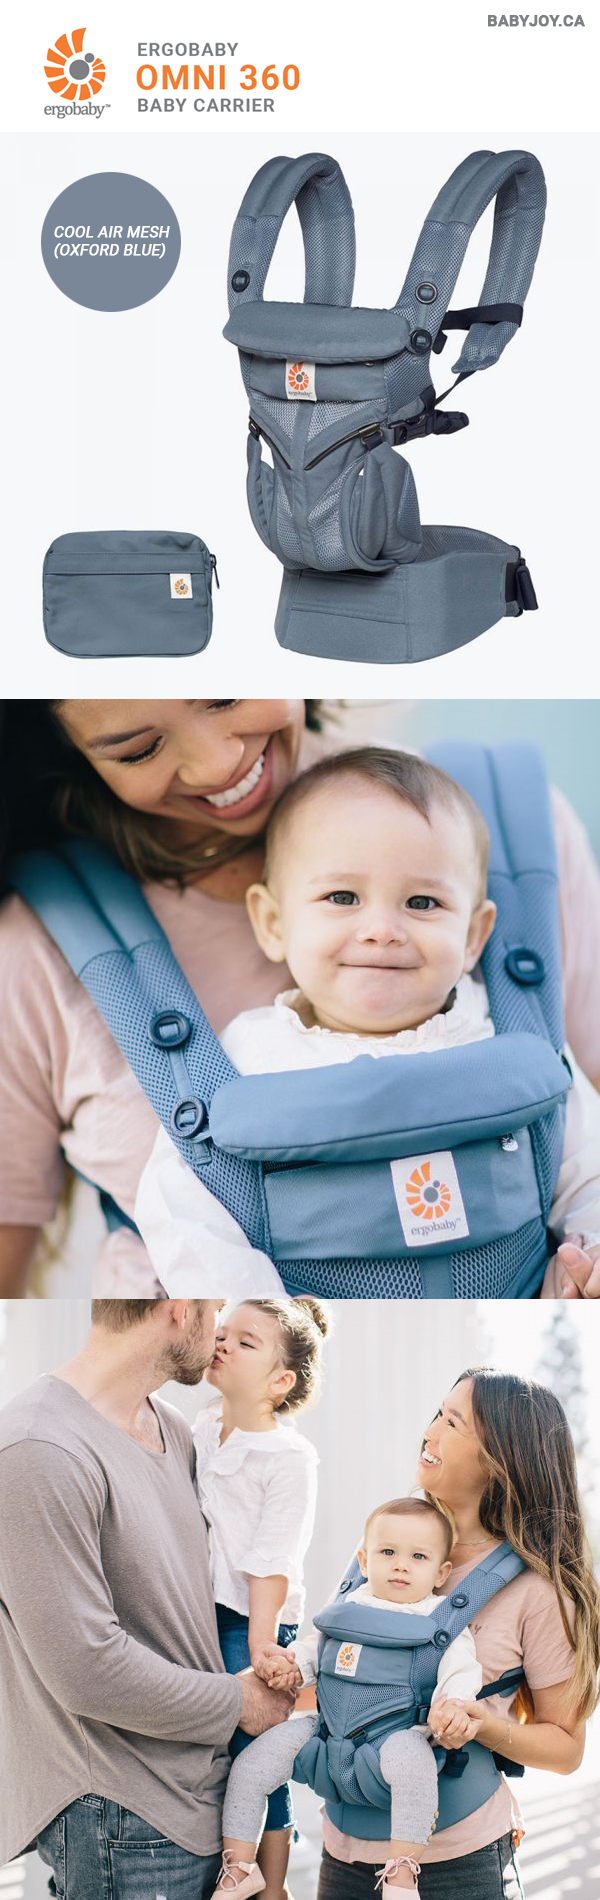 610002f23e4 Ergobaby Omni 360 Baby Carrier - Cool Air Mesh (Oxford Blue)